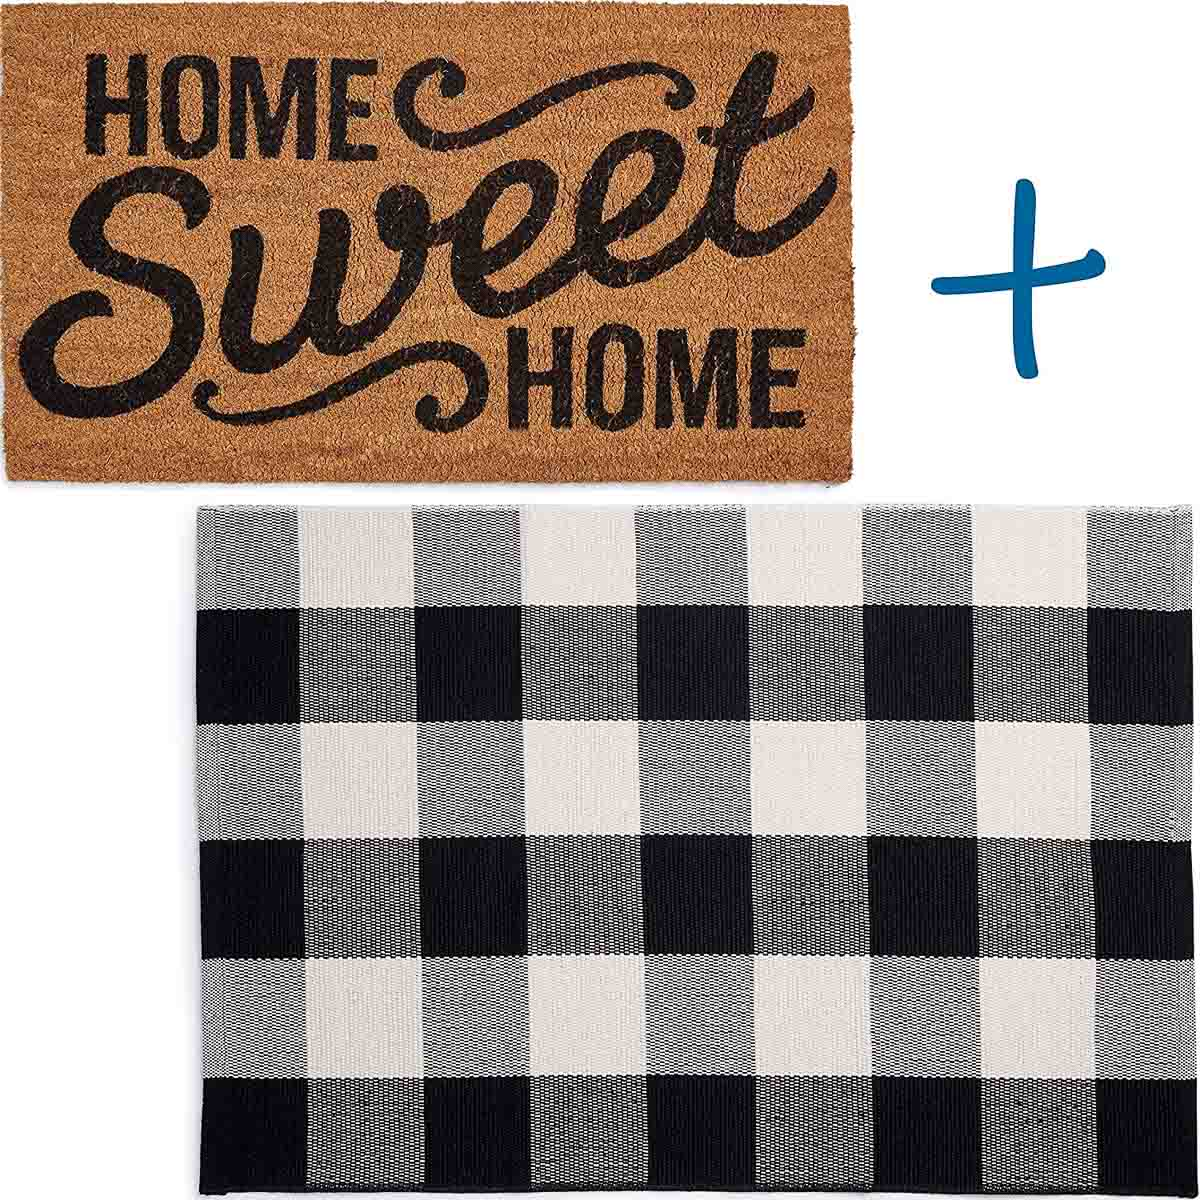 This cute doormat layered over a larger buffalo checked rug is perfect for your front door!